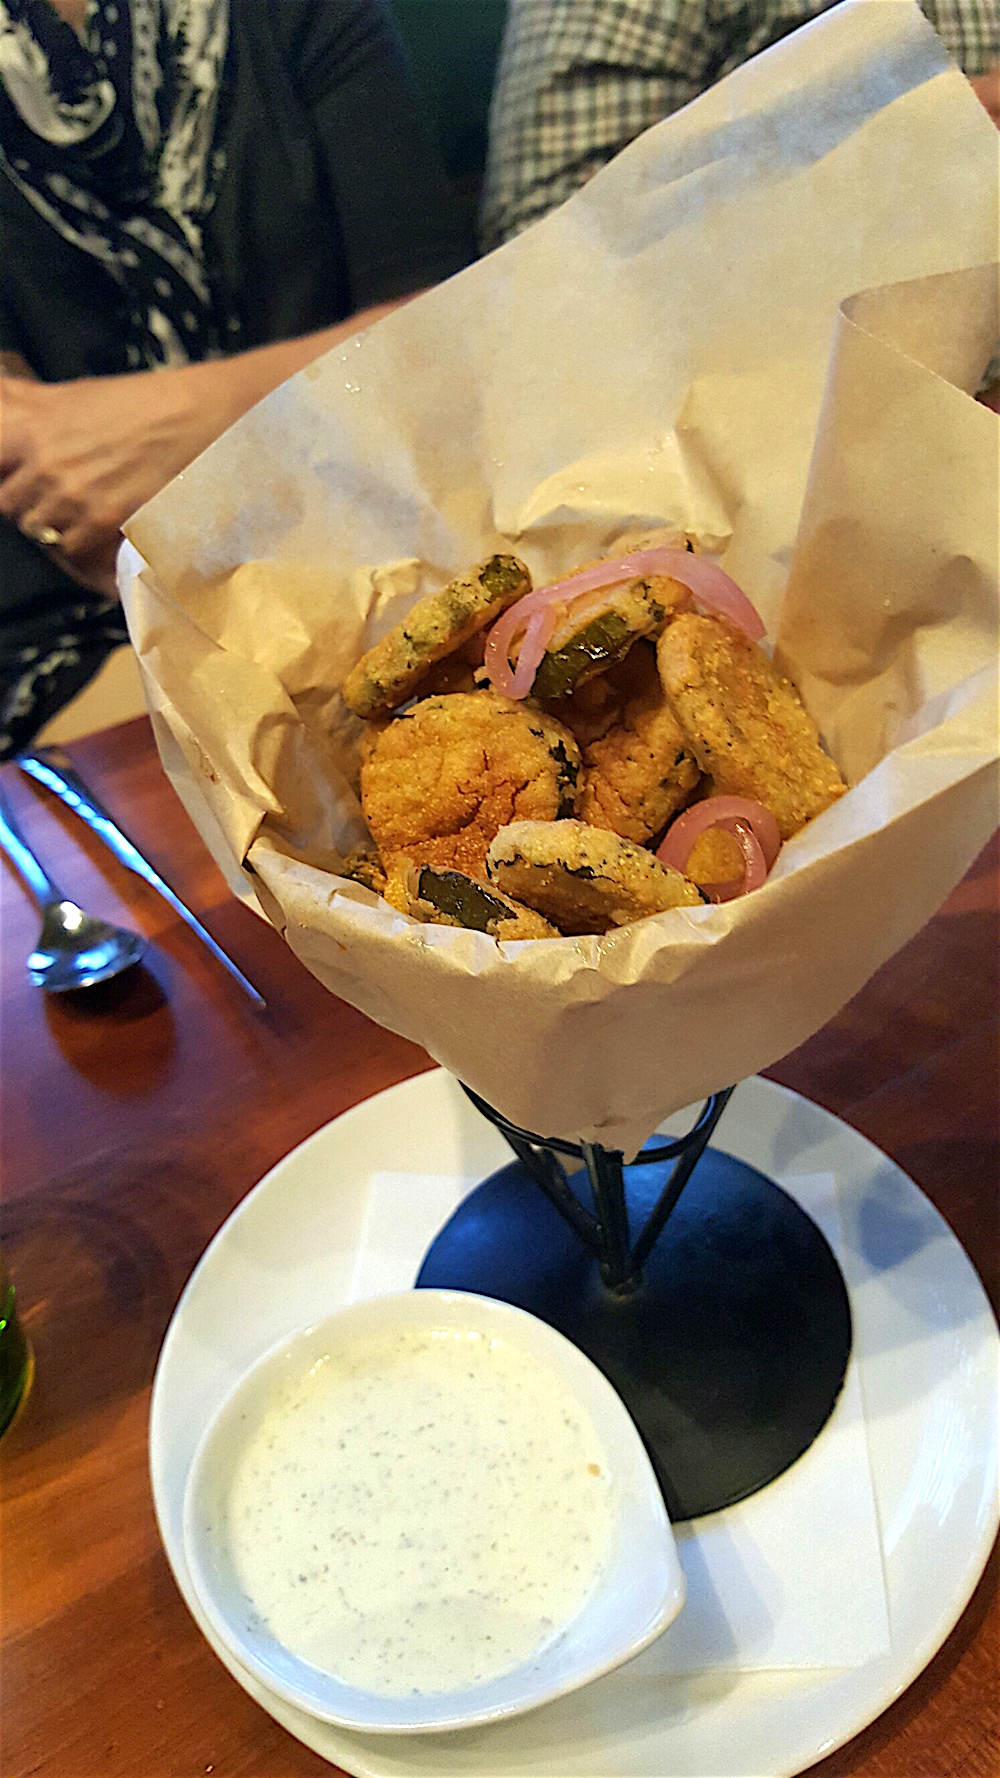 The fried pickles were to die for. Unfortunately, I ate so many of them that I couldn't finish my delicious Mussels Mariniere which were served in a bay shallot thyme Chablis butter broth. Boo.